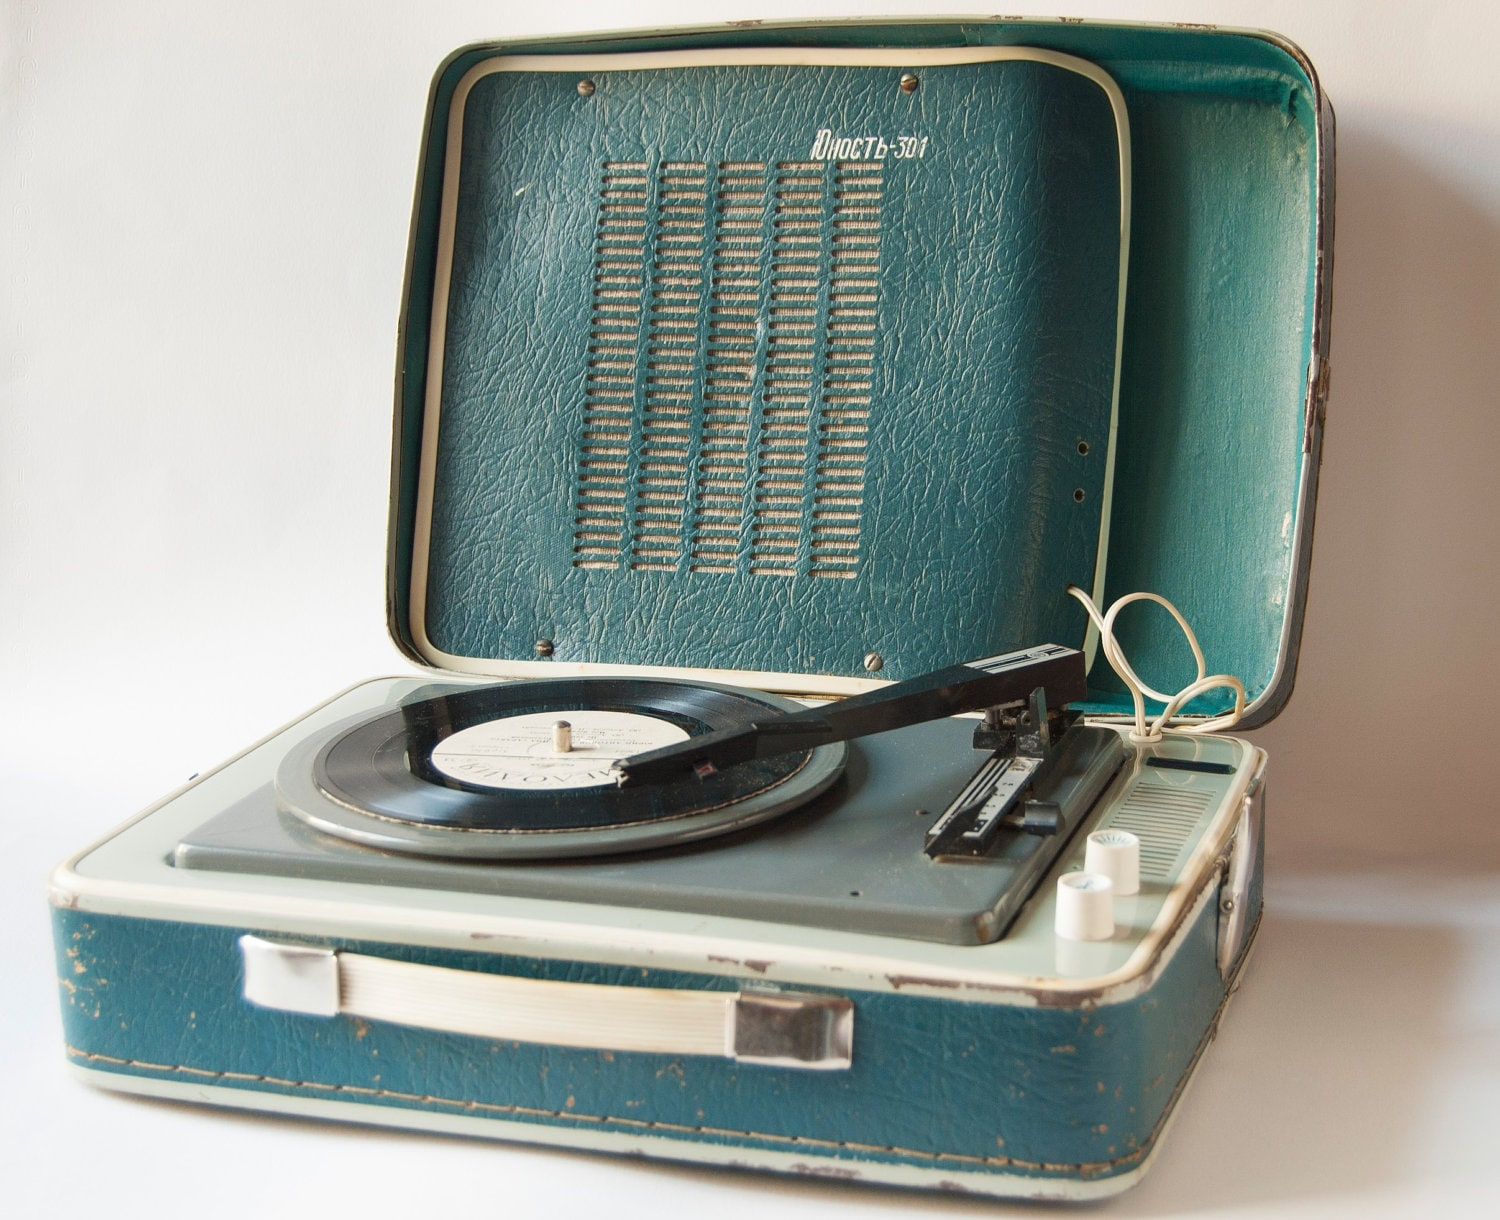 Soviet Vintage Portable Record Player 3 Speed Rare Record